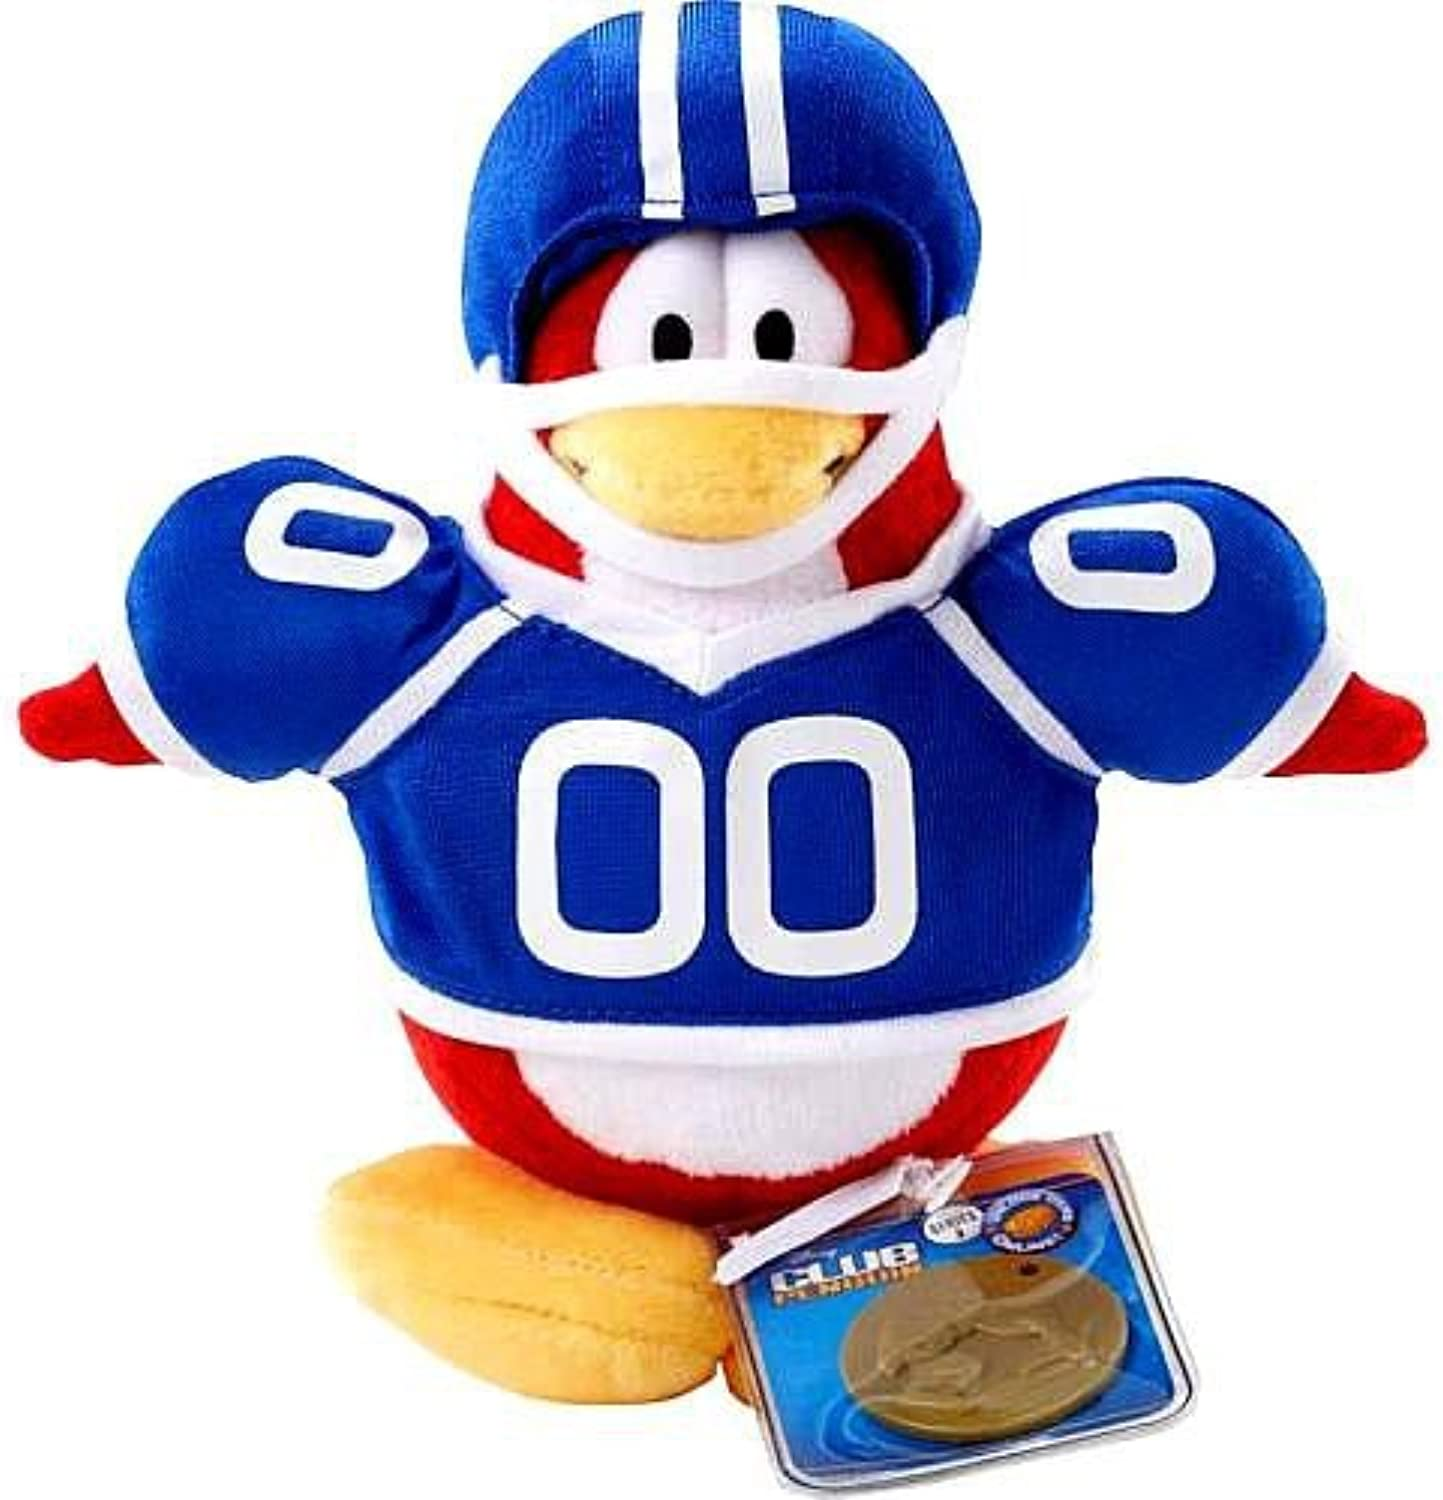 Disney Club Penguin 6.5 Inch Series 2 Plush Figure Football Player (Includes Coin with Code )